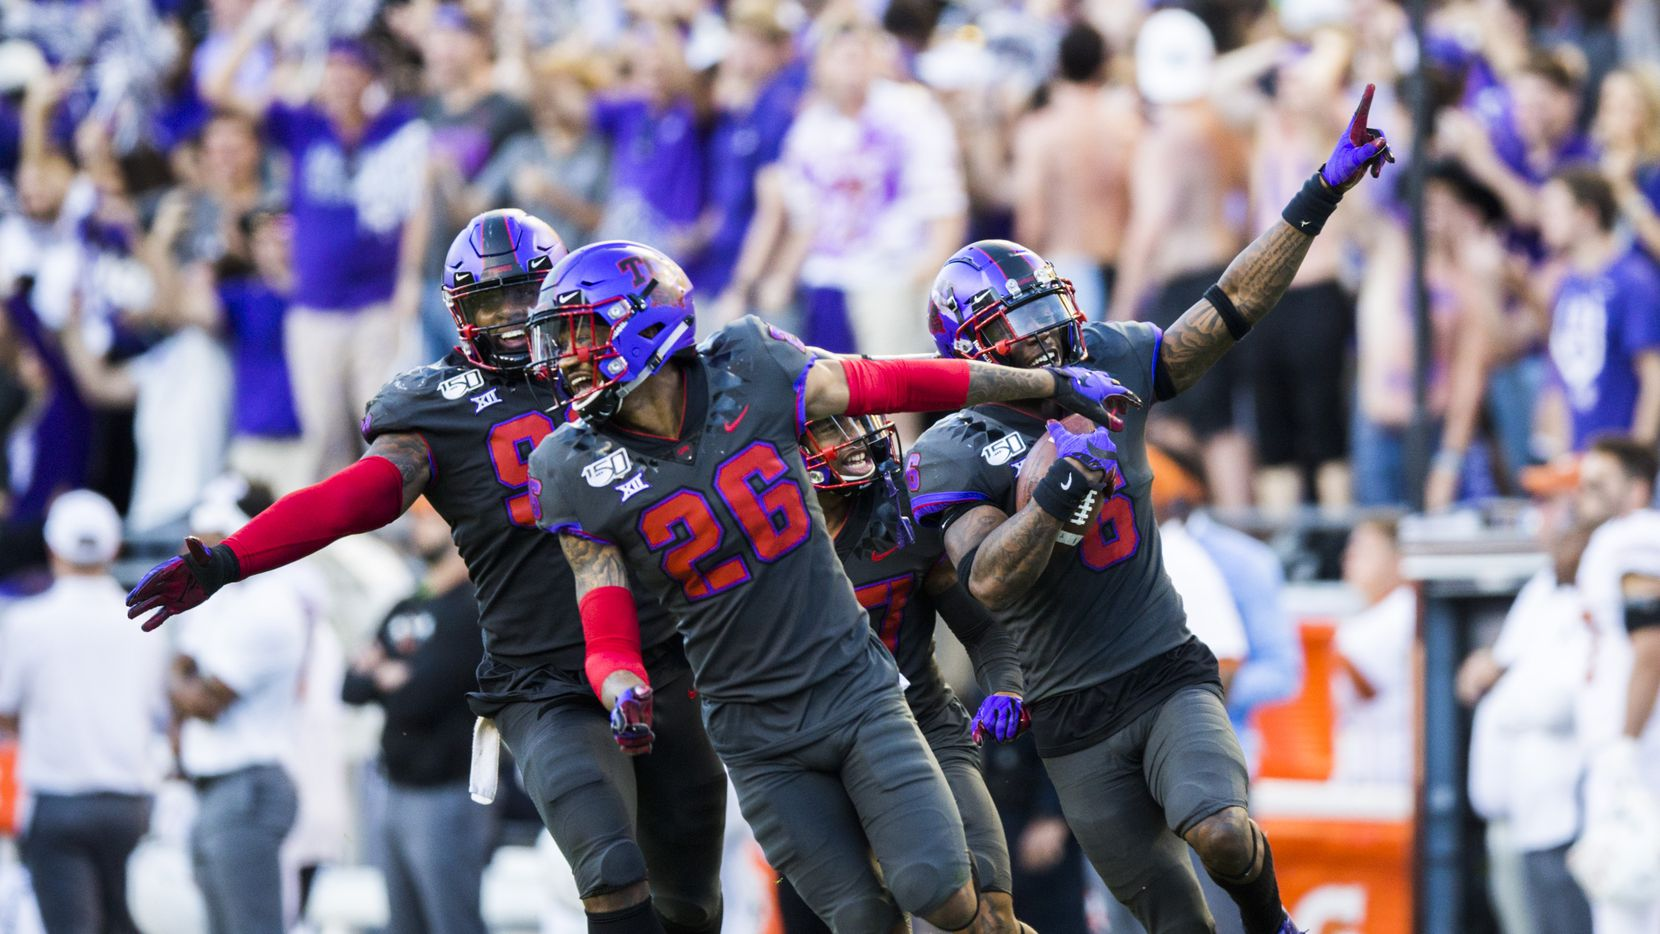 TCU Horned Frogs celebrate after safety Innis Gaines (6) caught an interception that clinched a TCU win during the fourth quarter of an NCAA football game between the University of Texas and TCU on Saturday, October 26, 2019 at Amon G Carter Stadium in Fort Worth. TCU won 37-27.